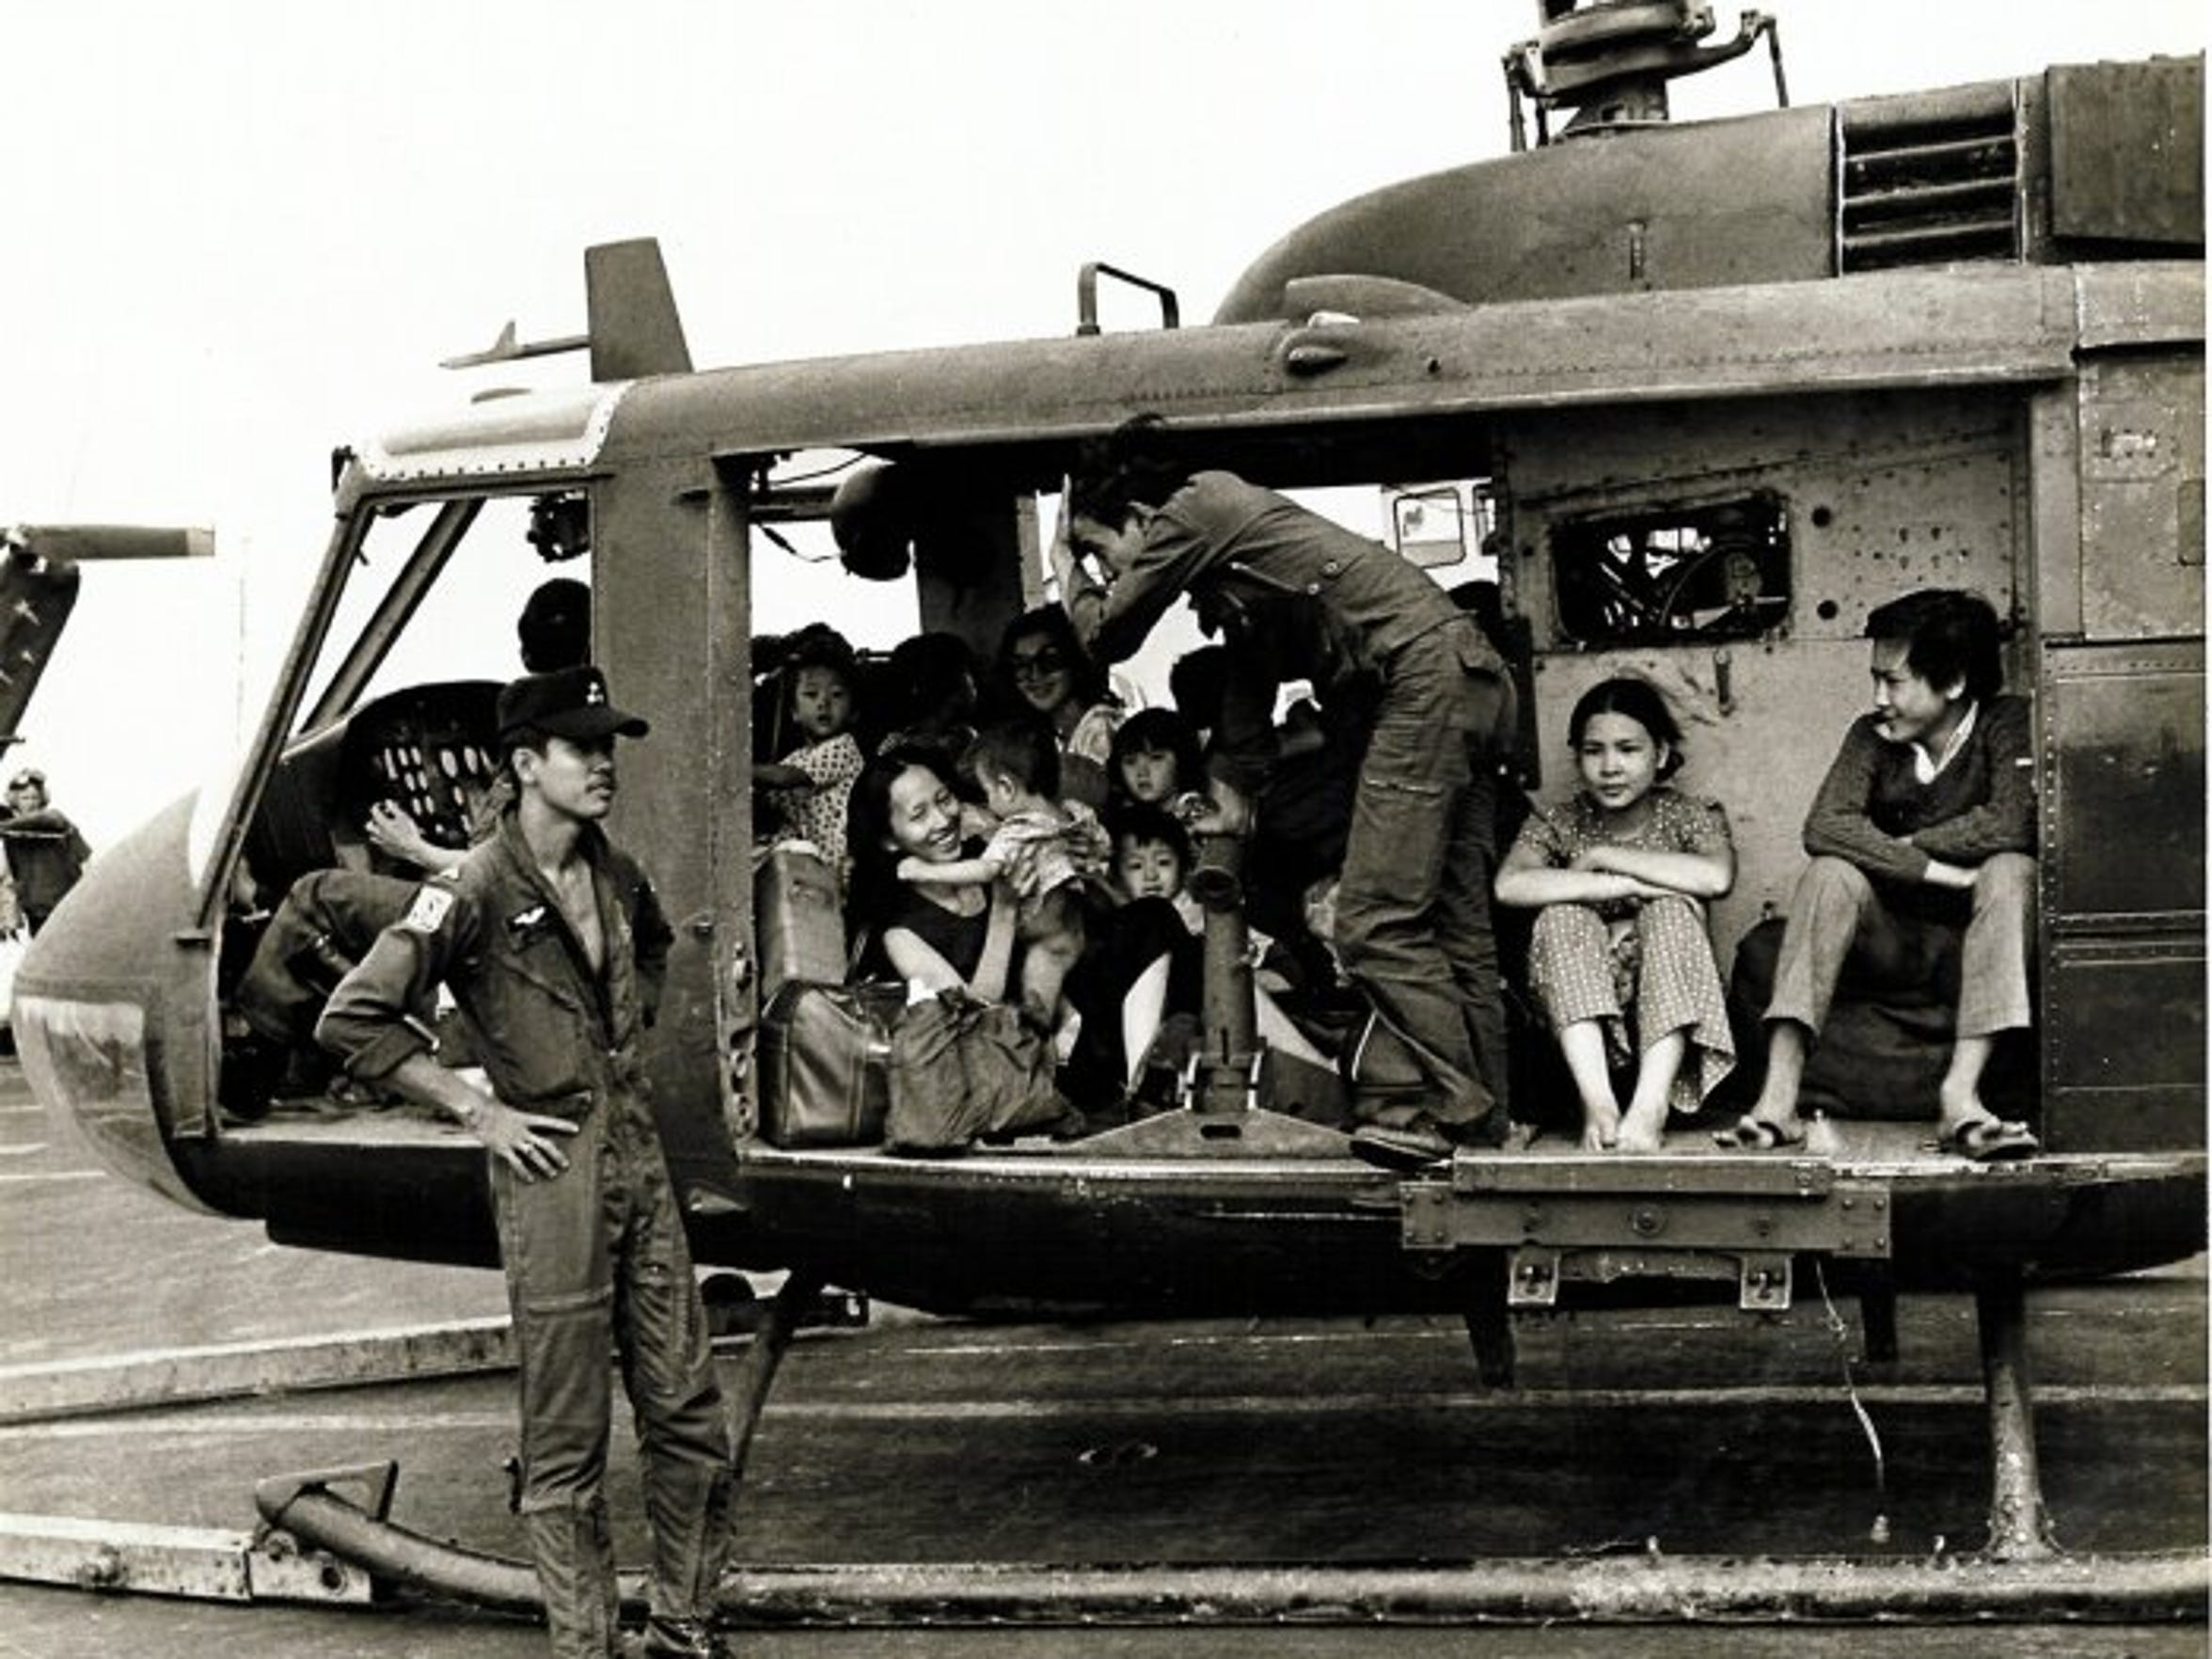 Vietnamese refugees sit in a helicopter on the USS